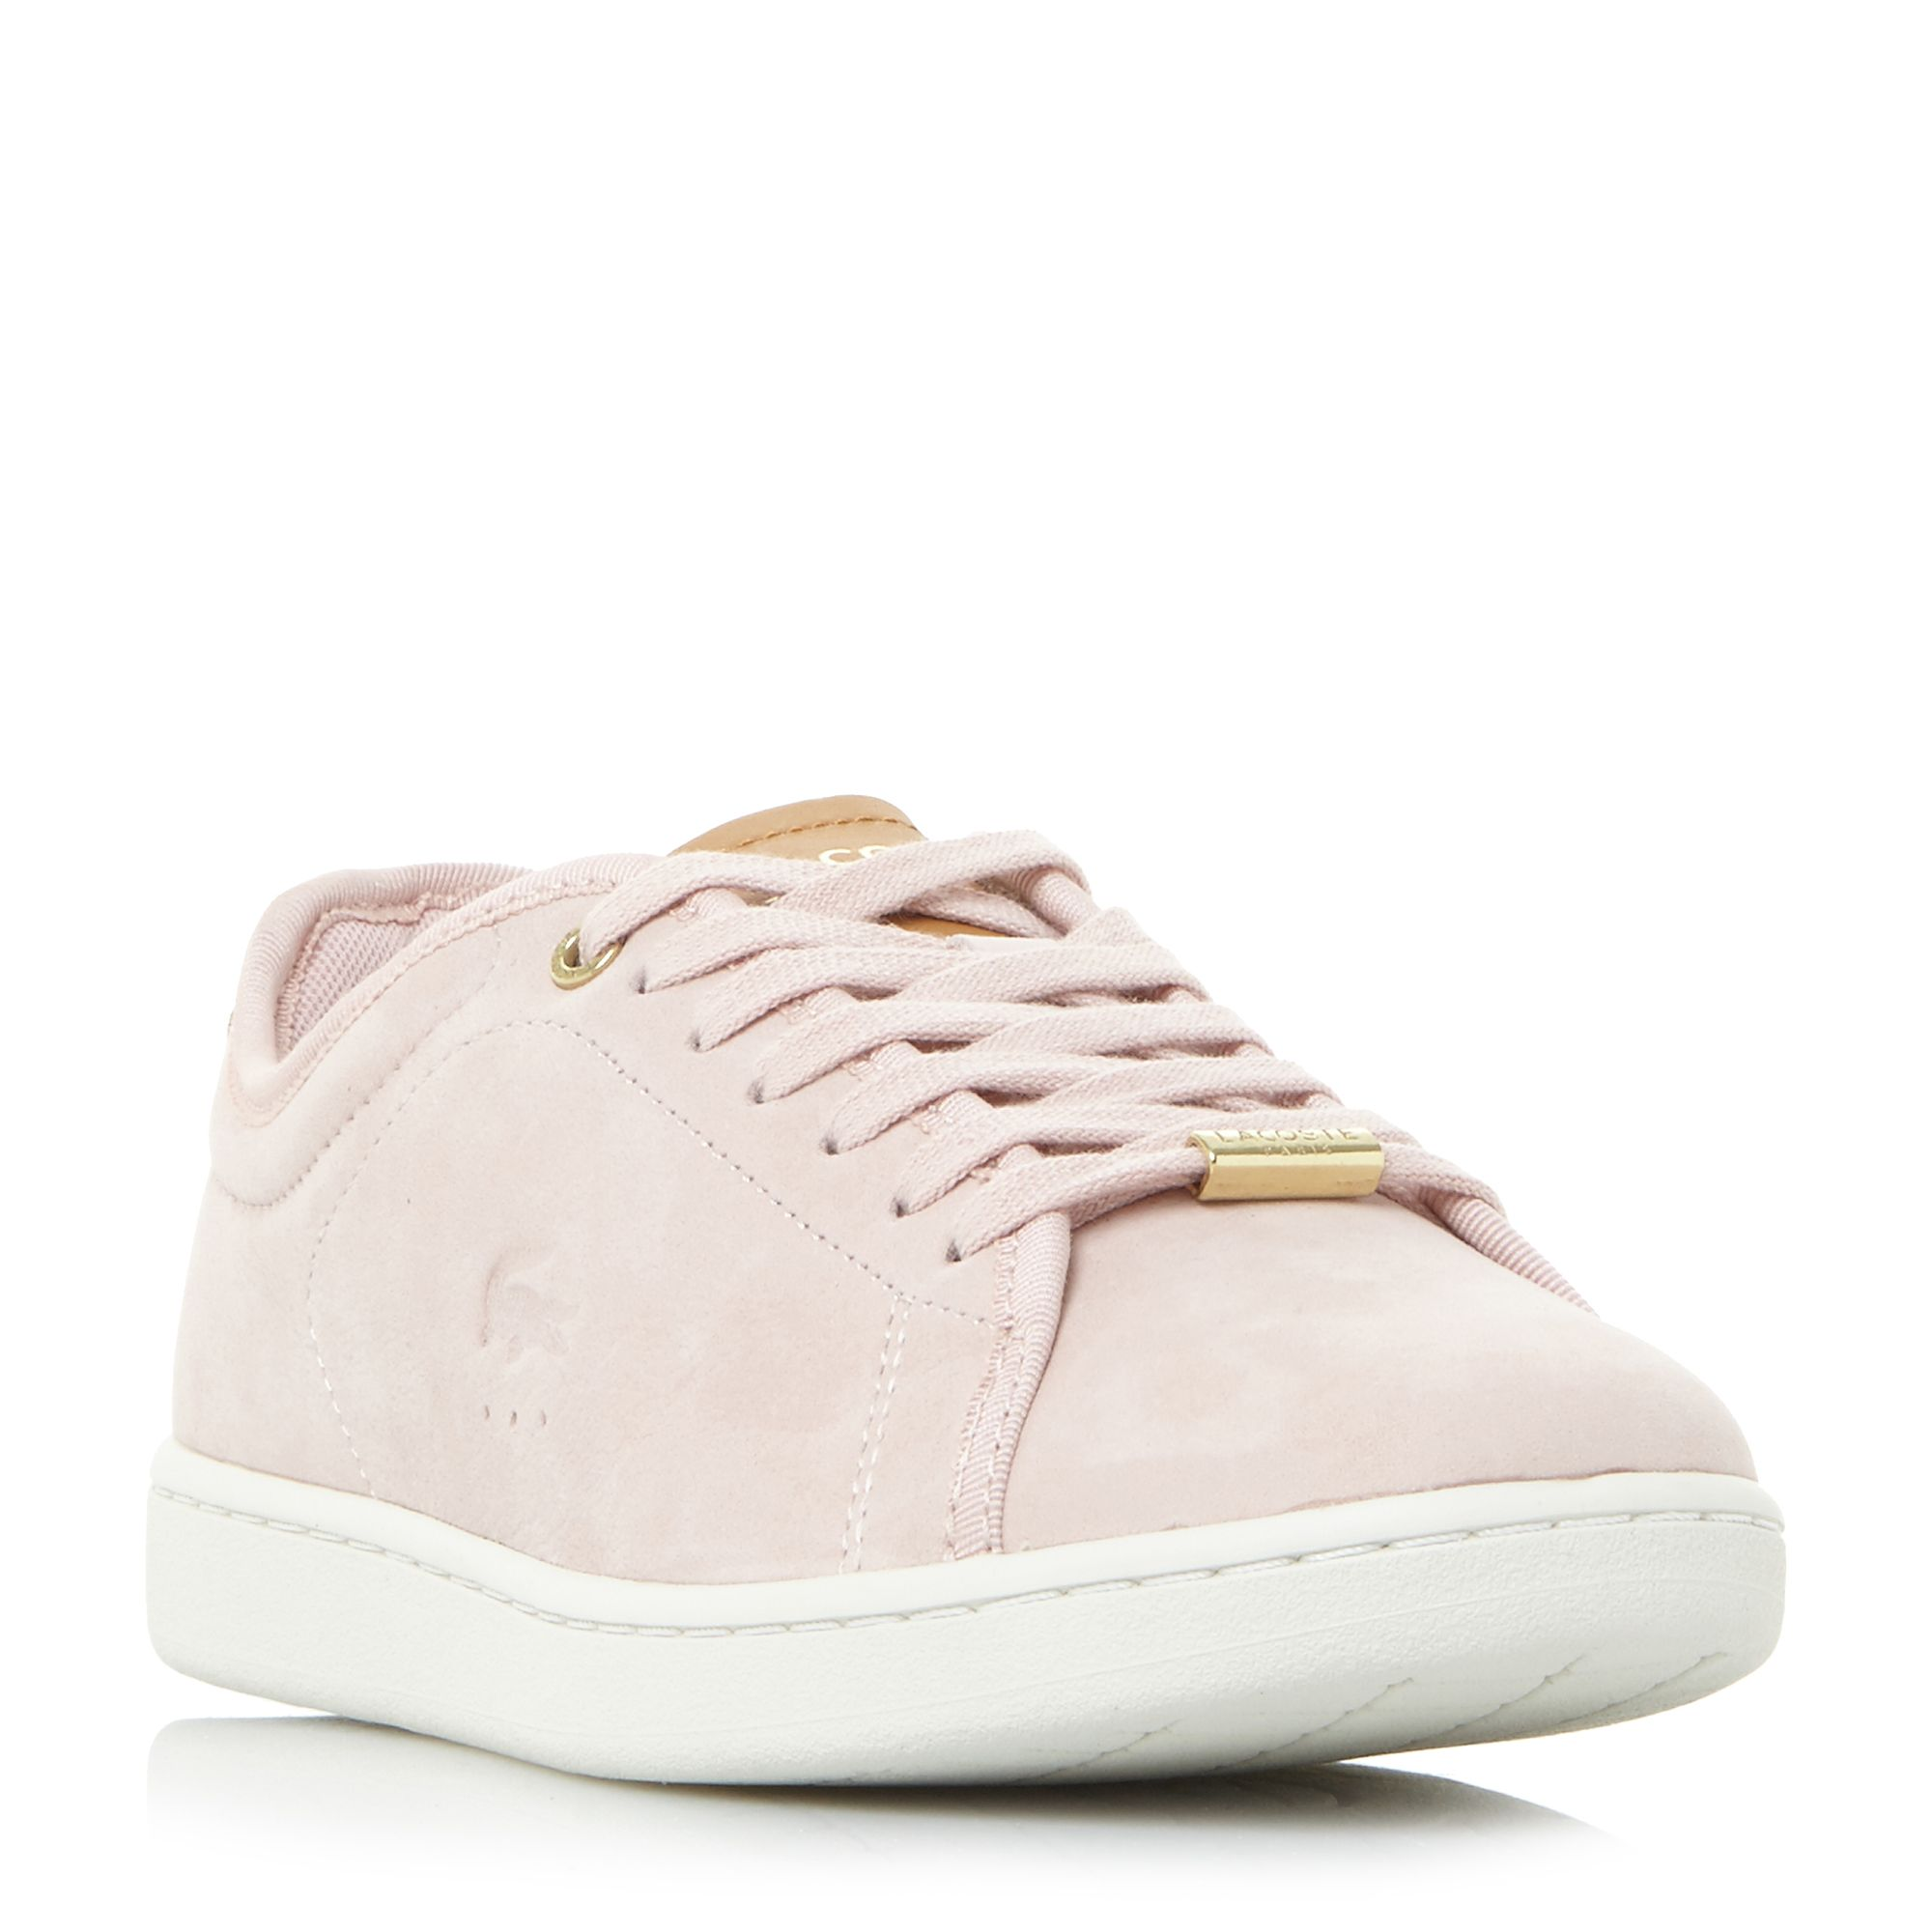 Lacoste Carnaby Evo Gold Detail Trainers, Pink